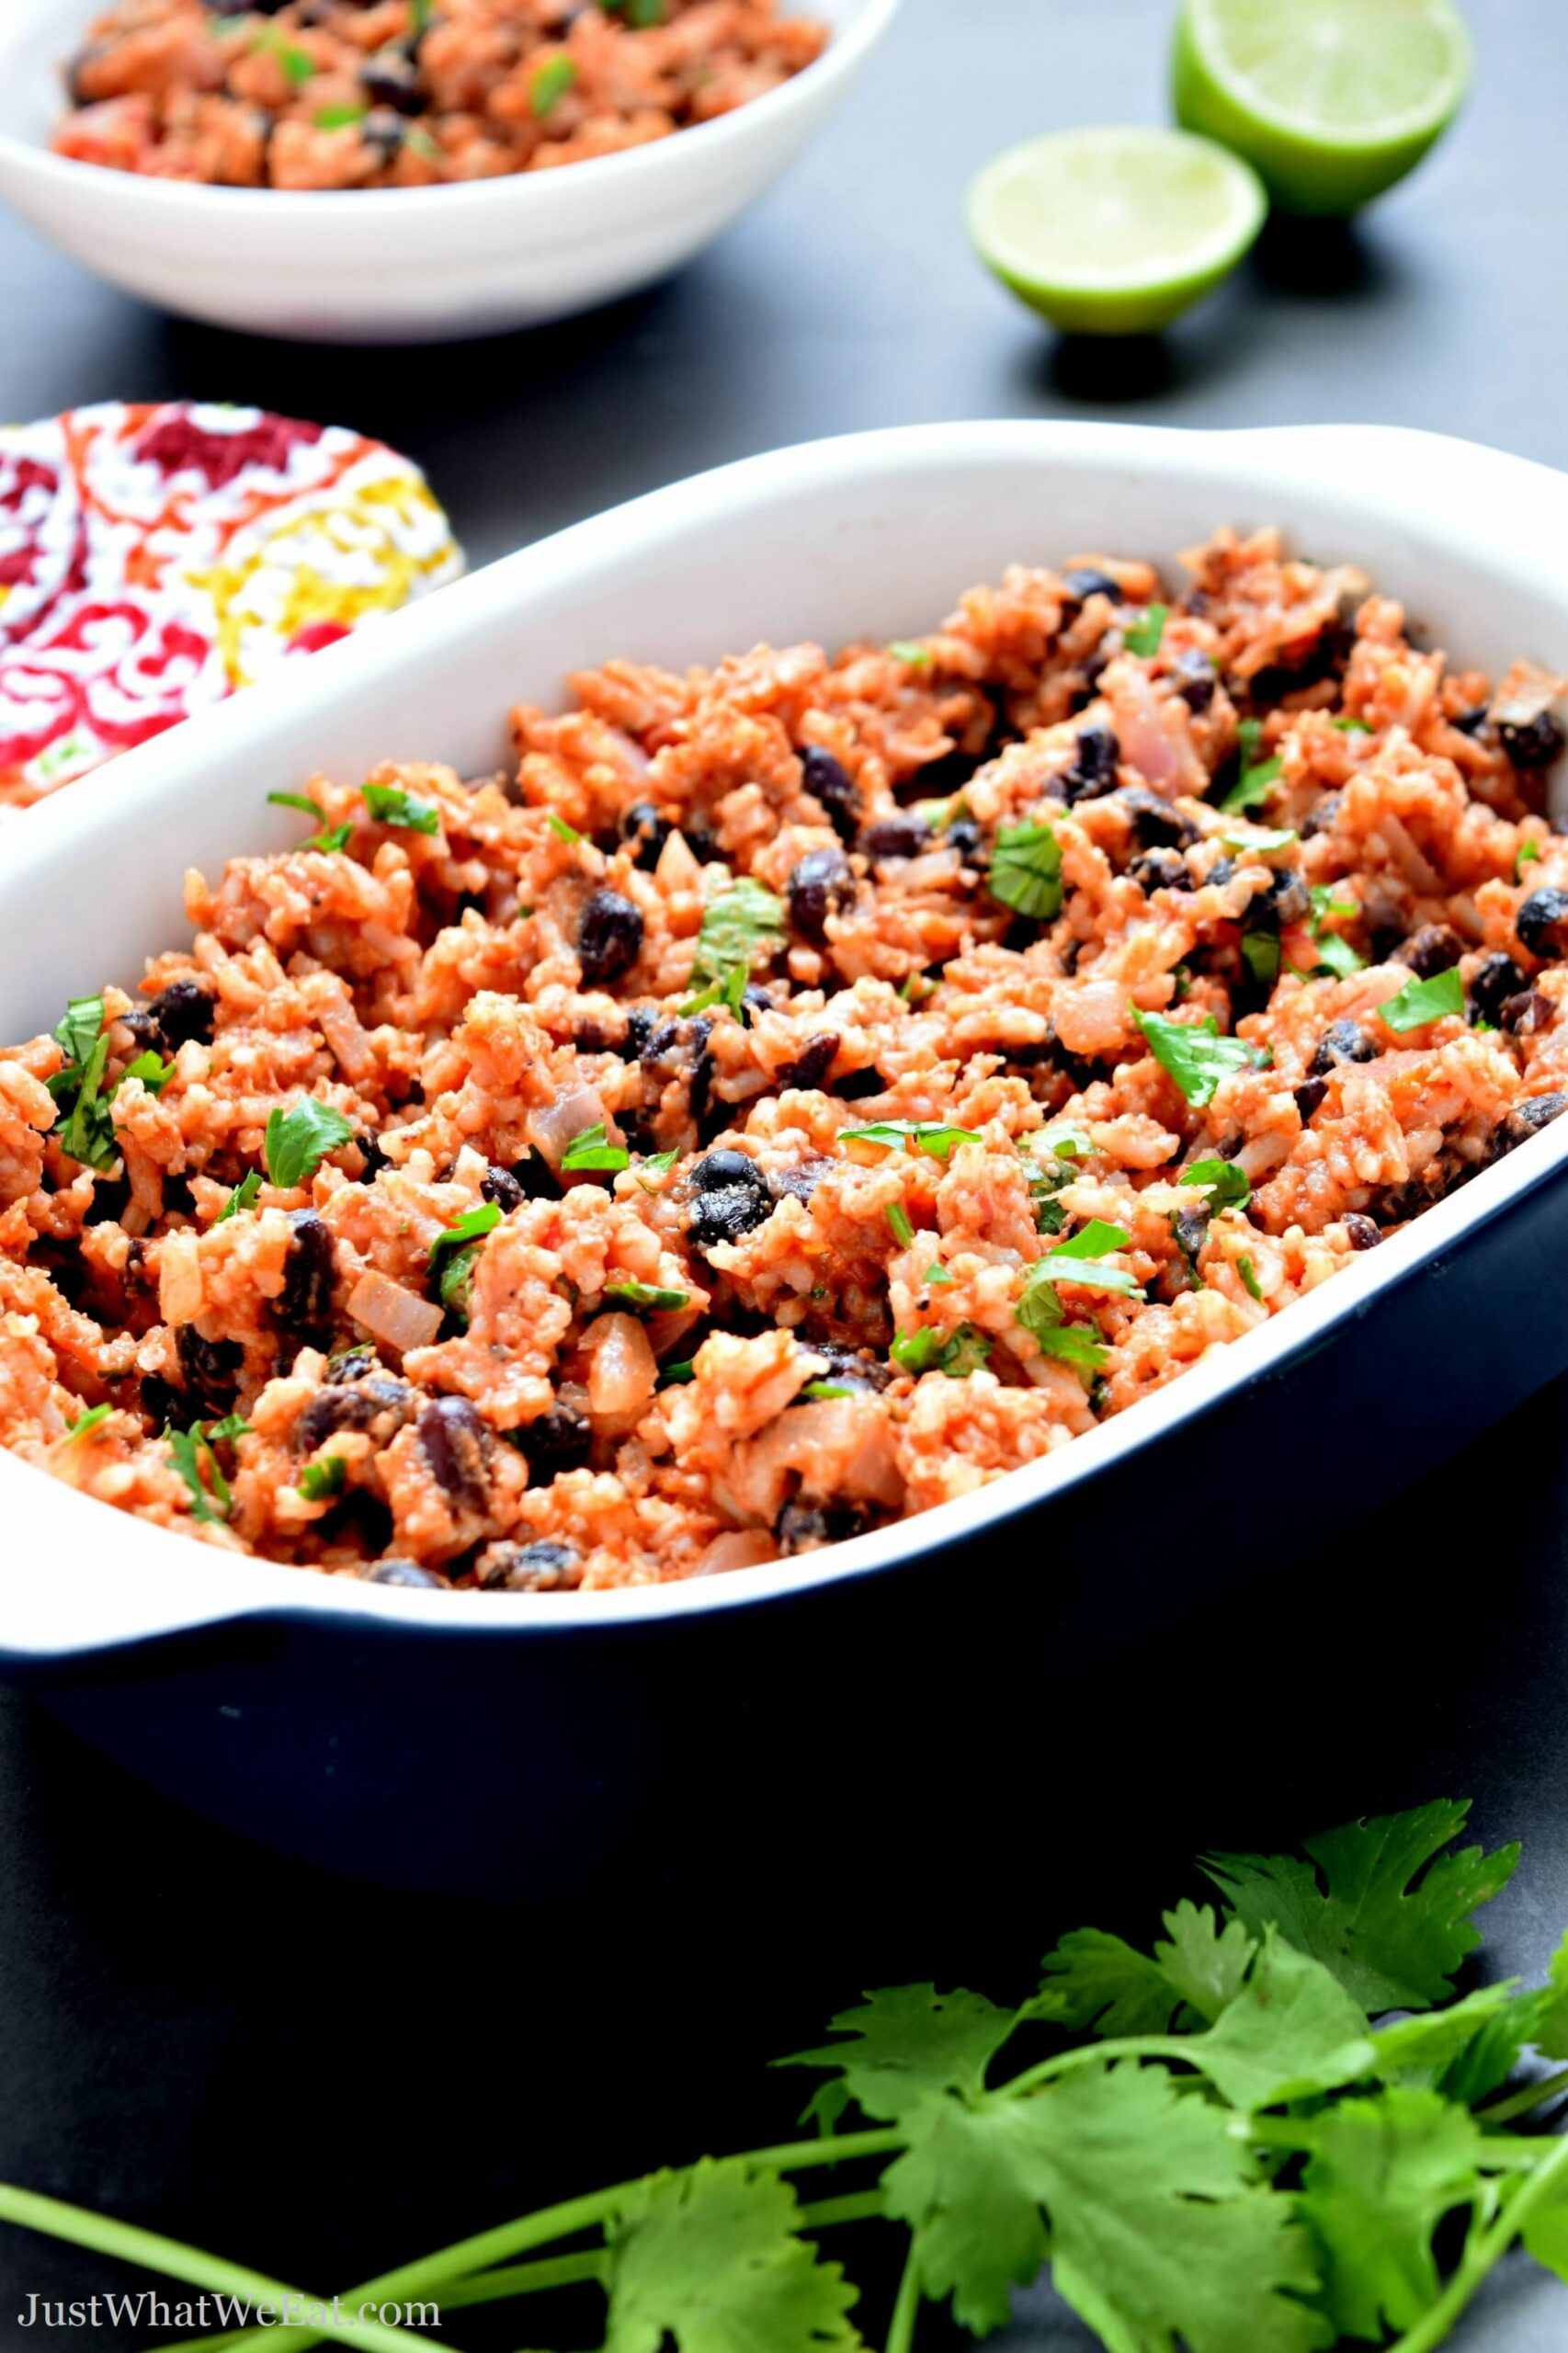 Mexican Beans and Rice - Gluten Free & Vegan - Just What We Eat - Rice Recipes Dairy Free